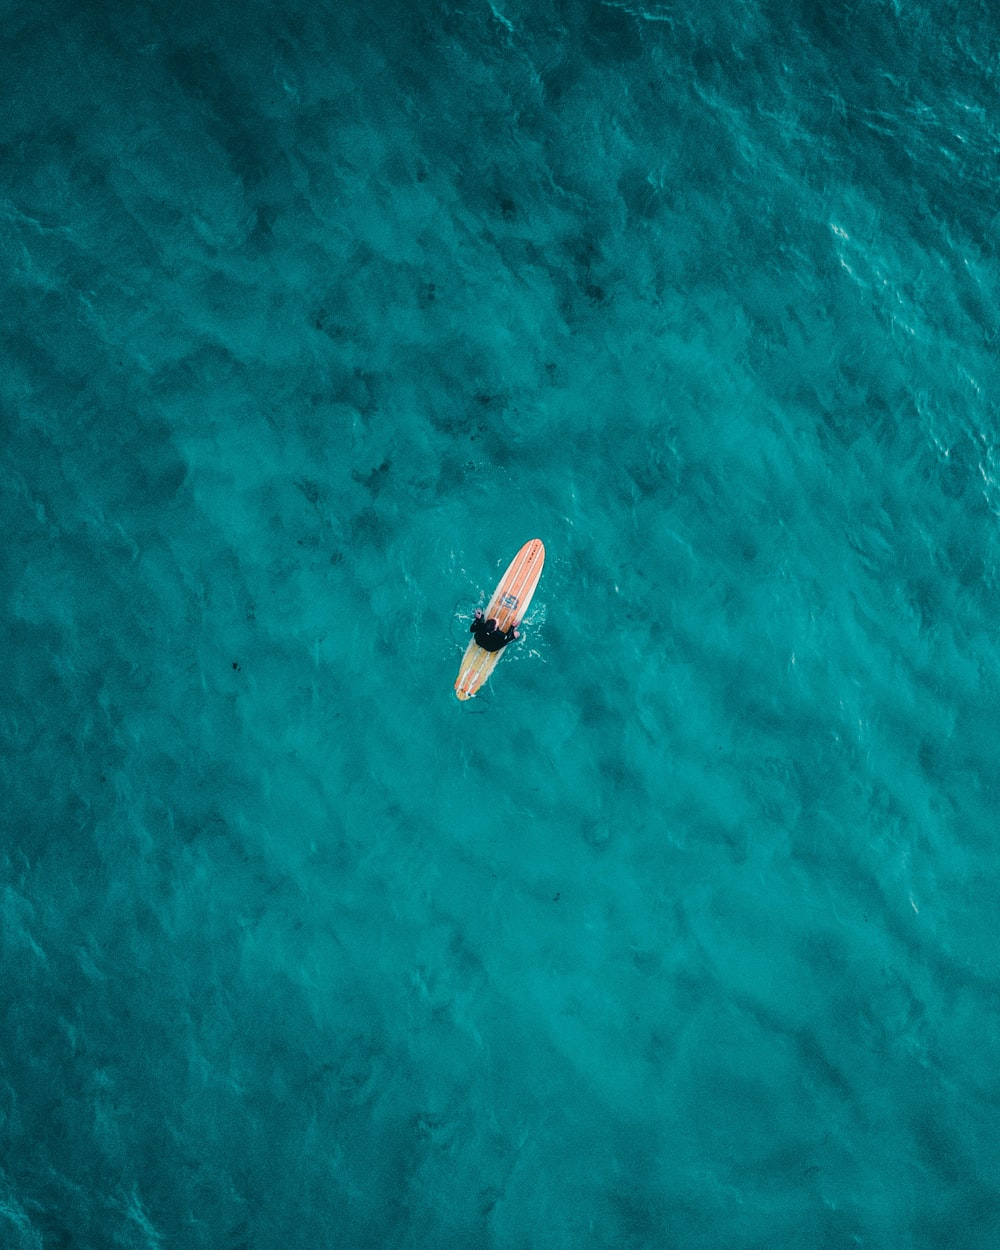 aerial photography of person on surfboard on sea